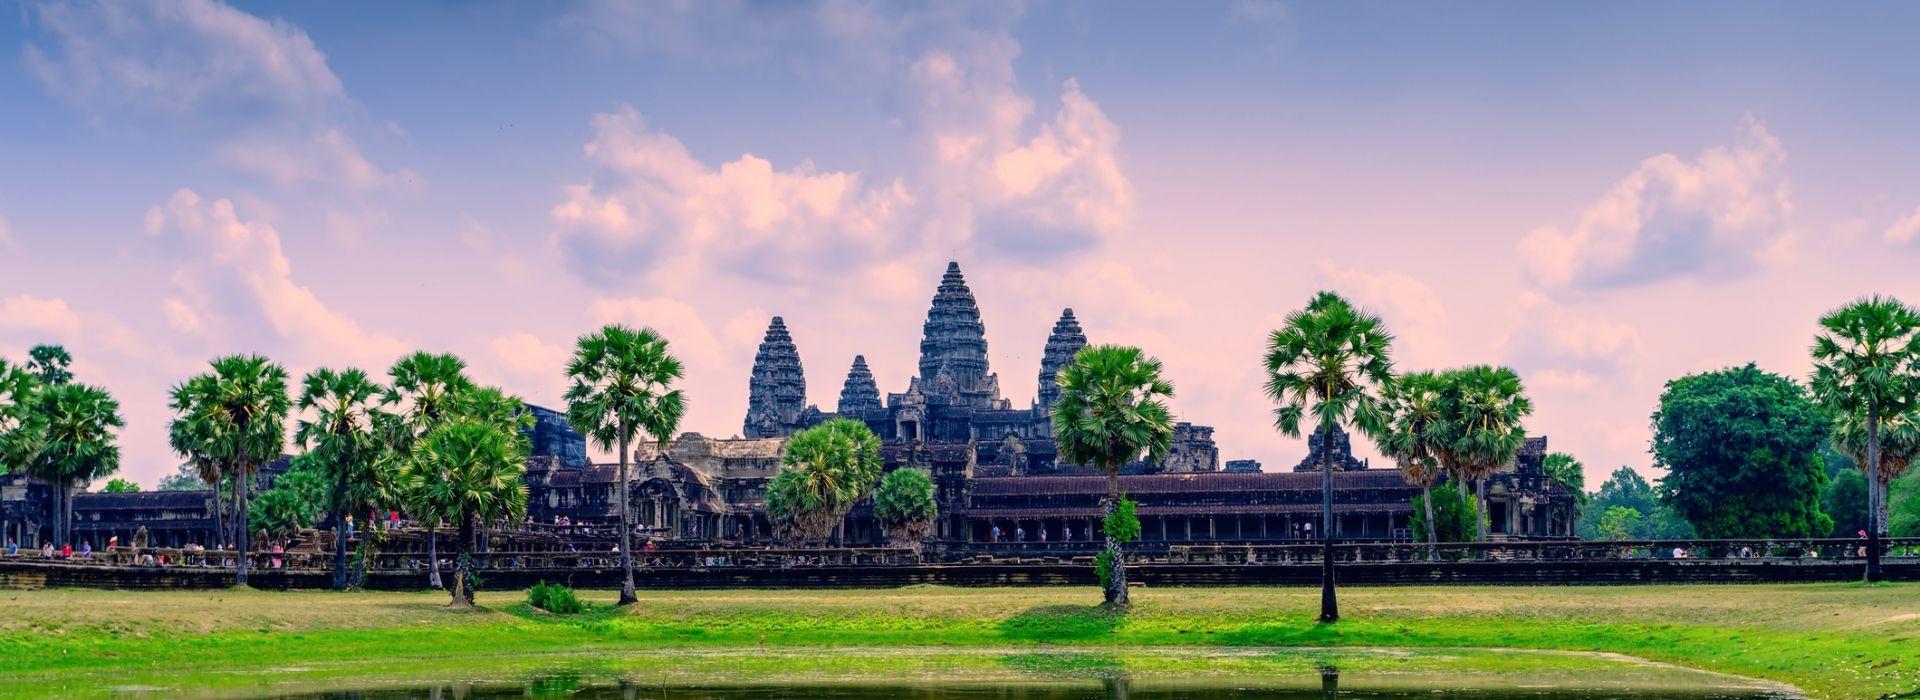 Art and architecture Tours in Siem Reap